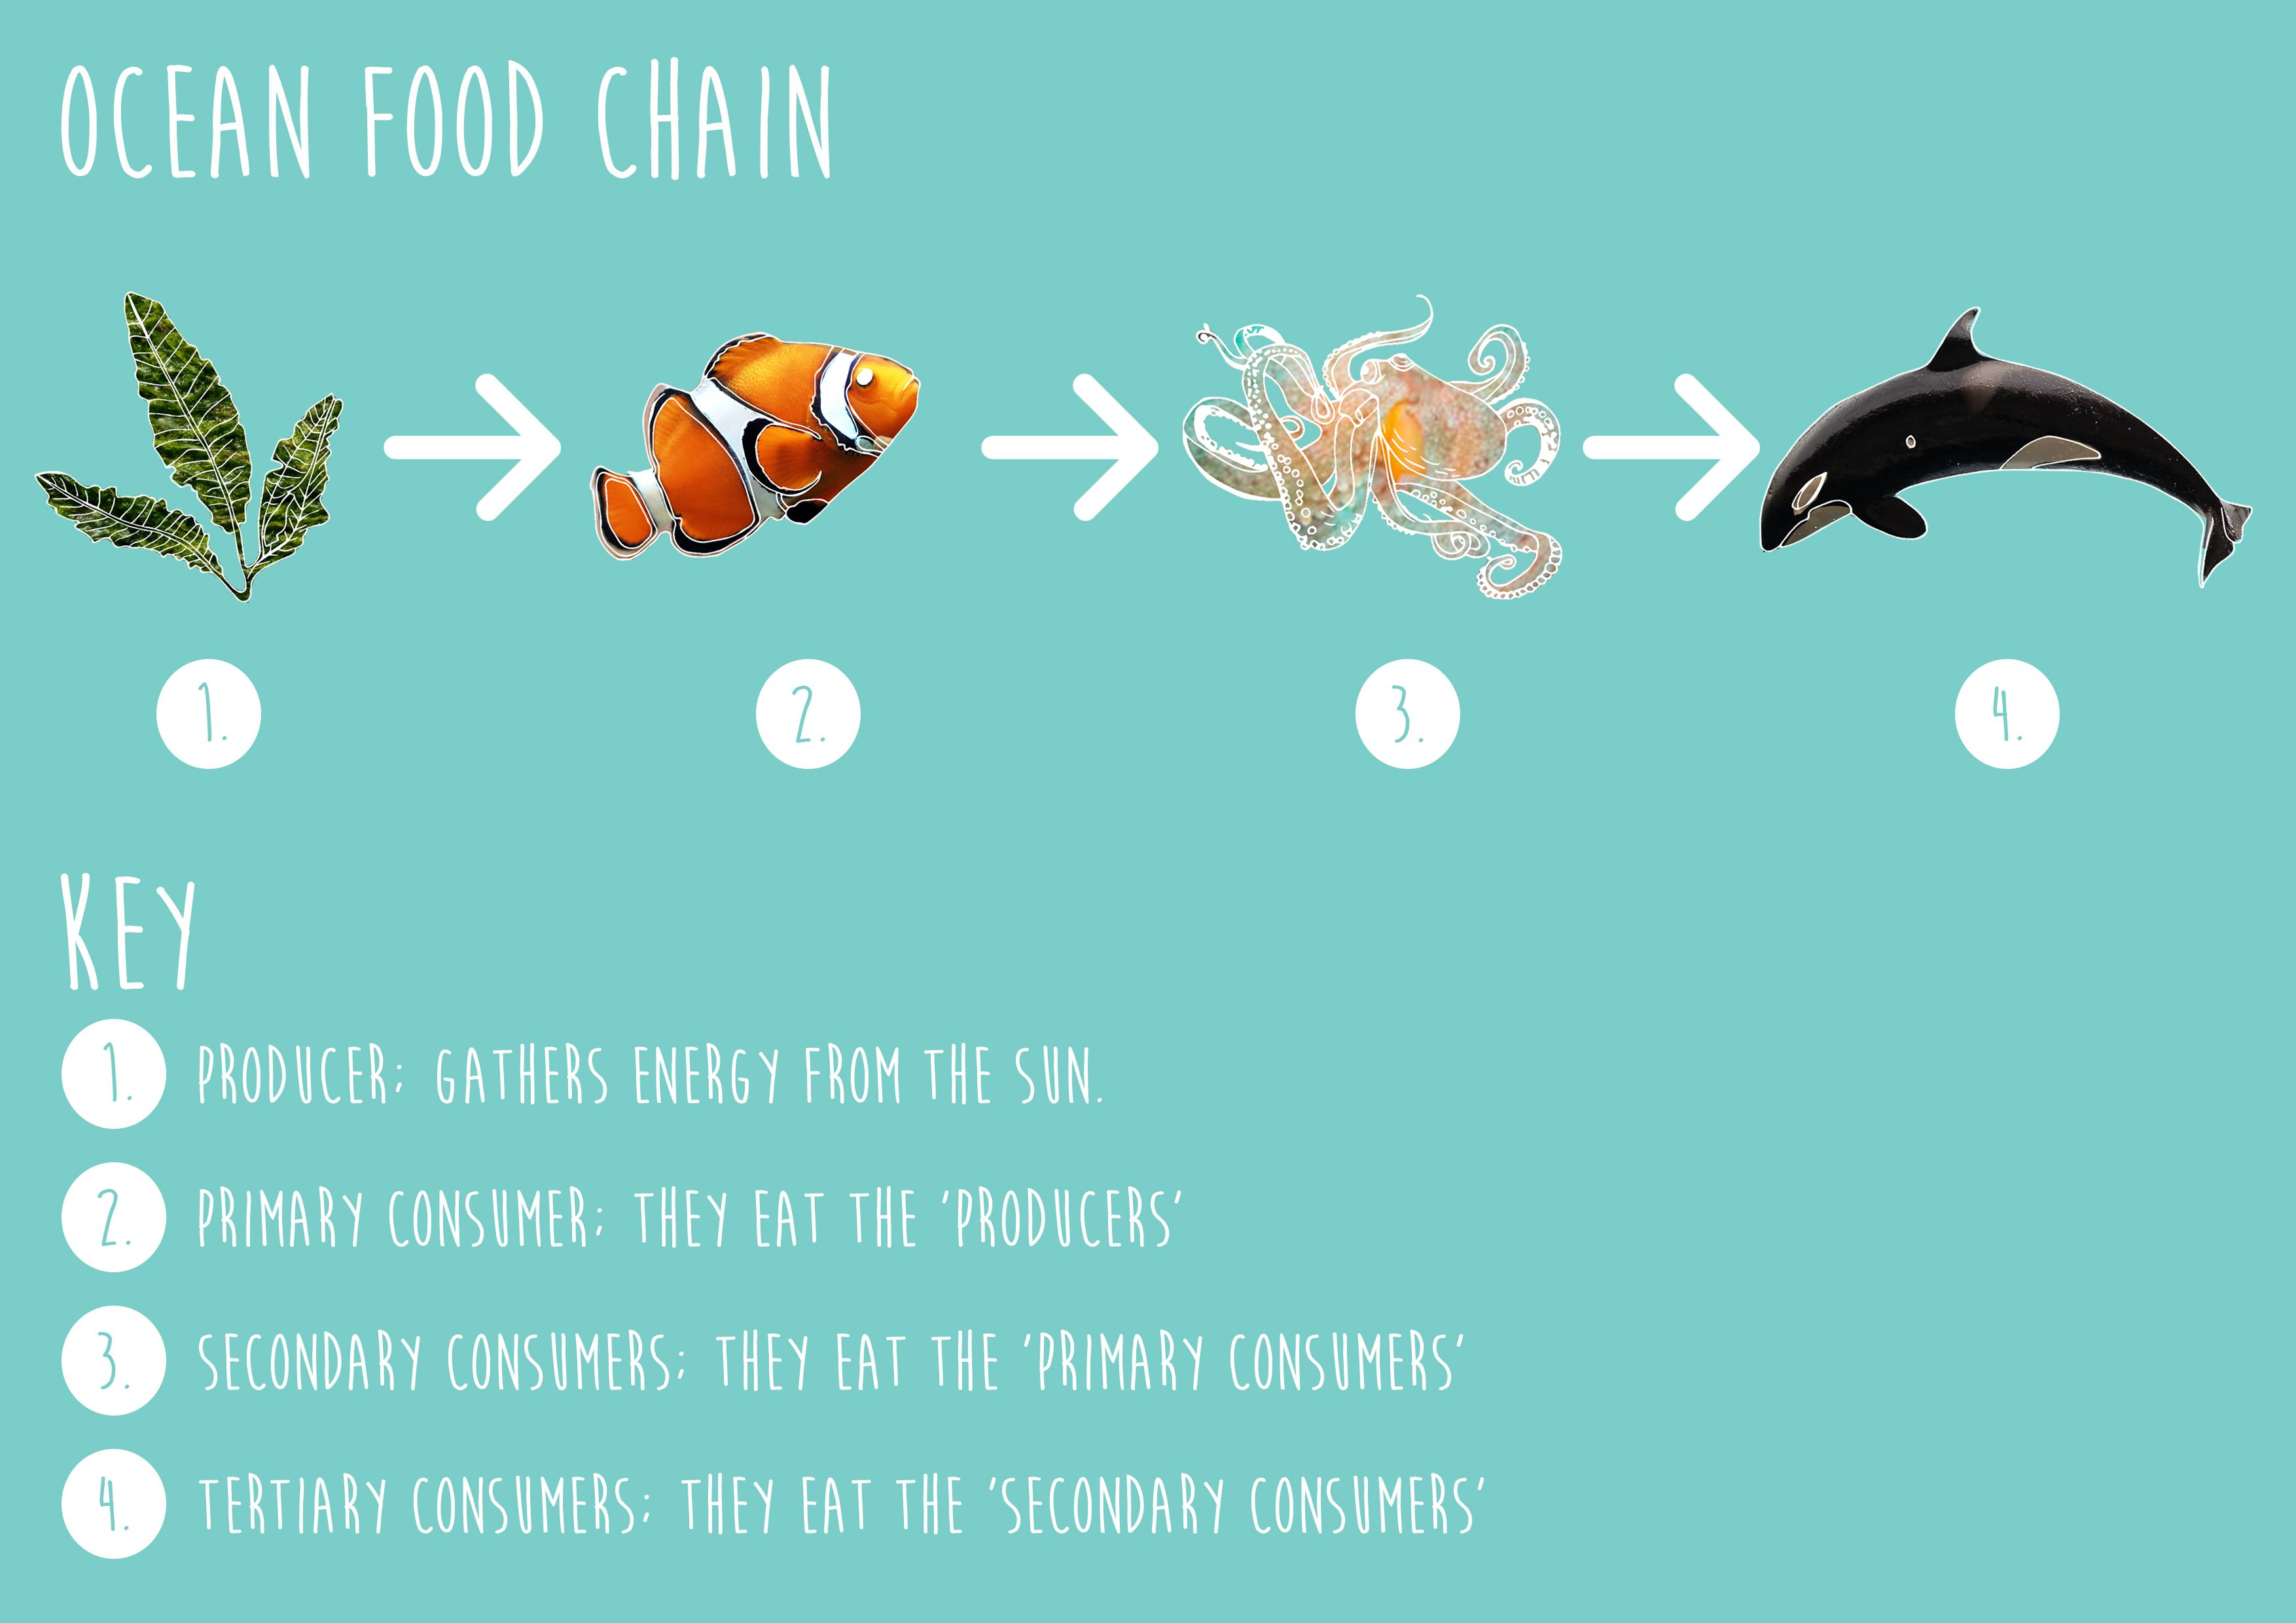 Tundra Food Web - Top Hd Images For Free